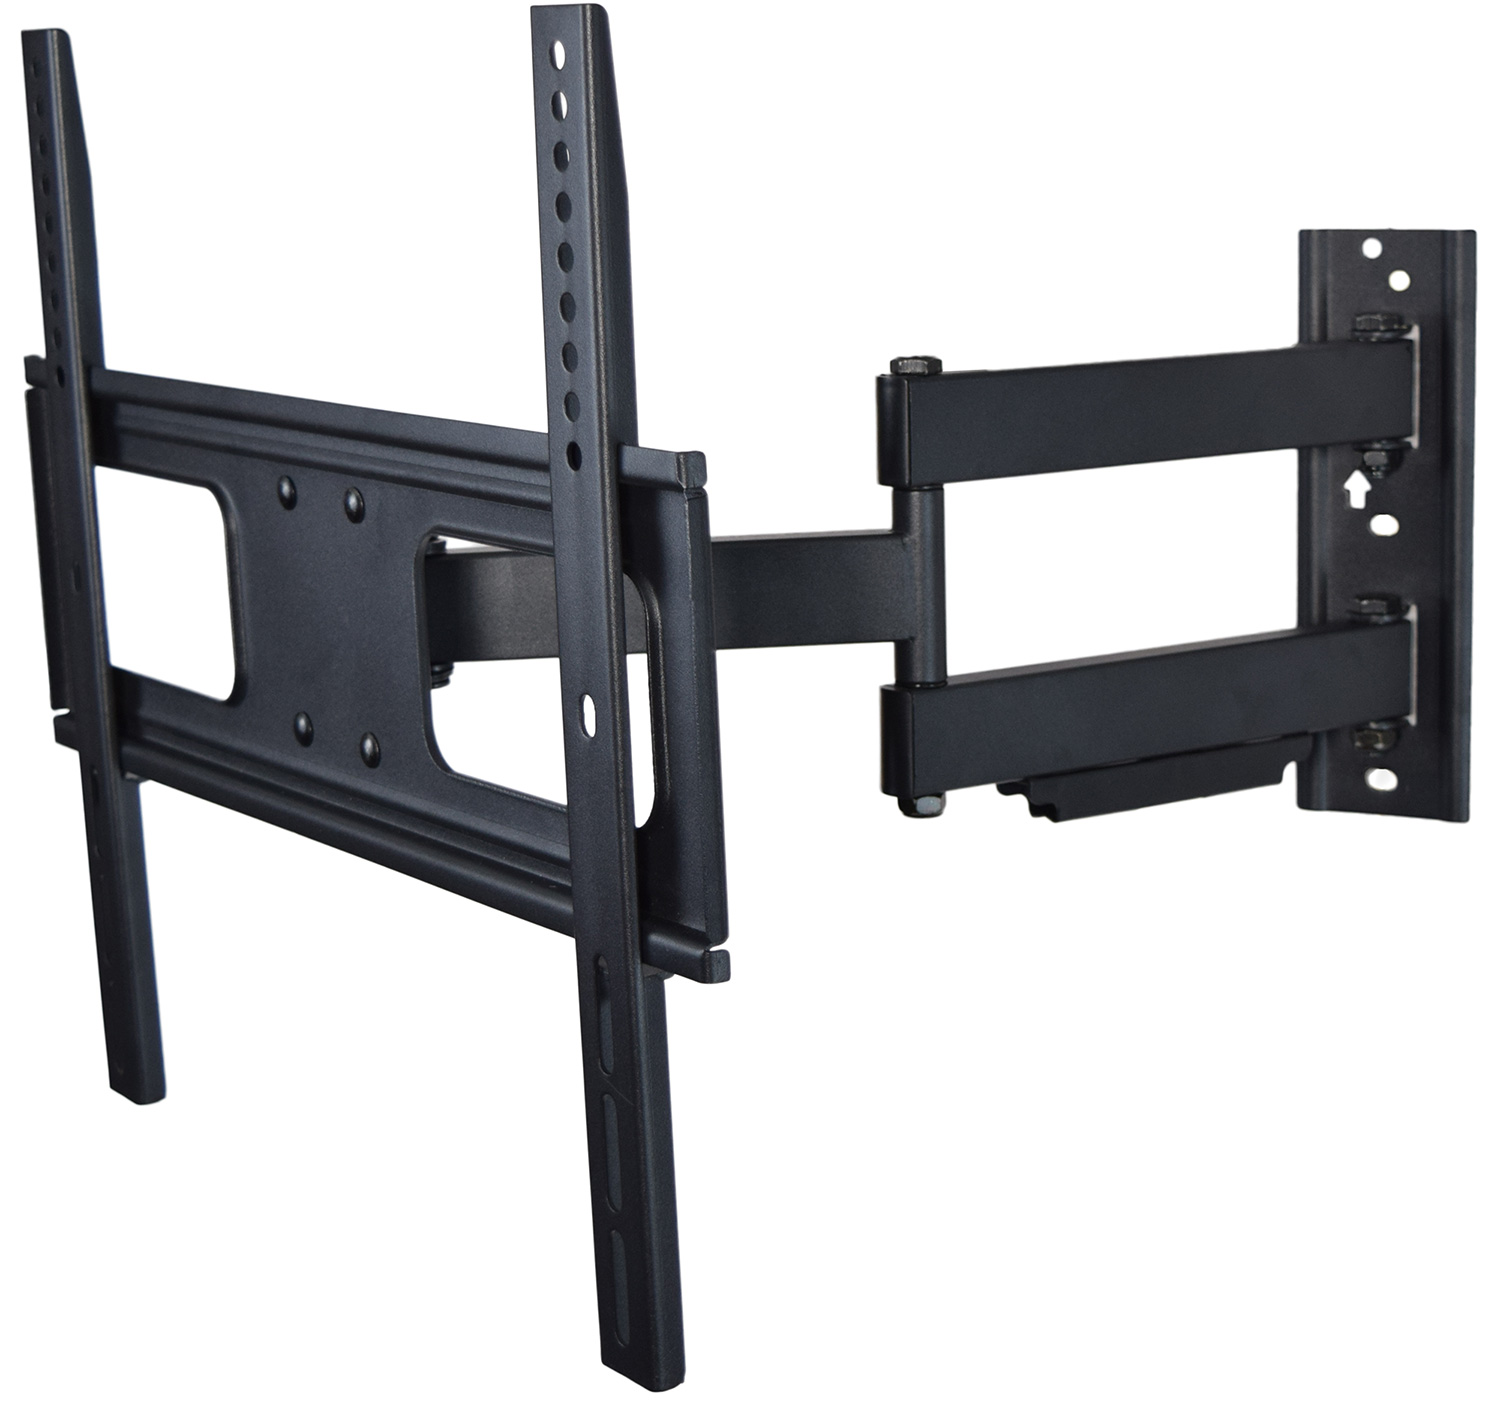 vivo articulating tv wall mount vesa stand for lcd led plasma screen 32 to 55 cad. Black Bedroom Furniture Sets. Home Design Ideas